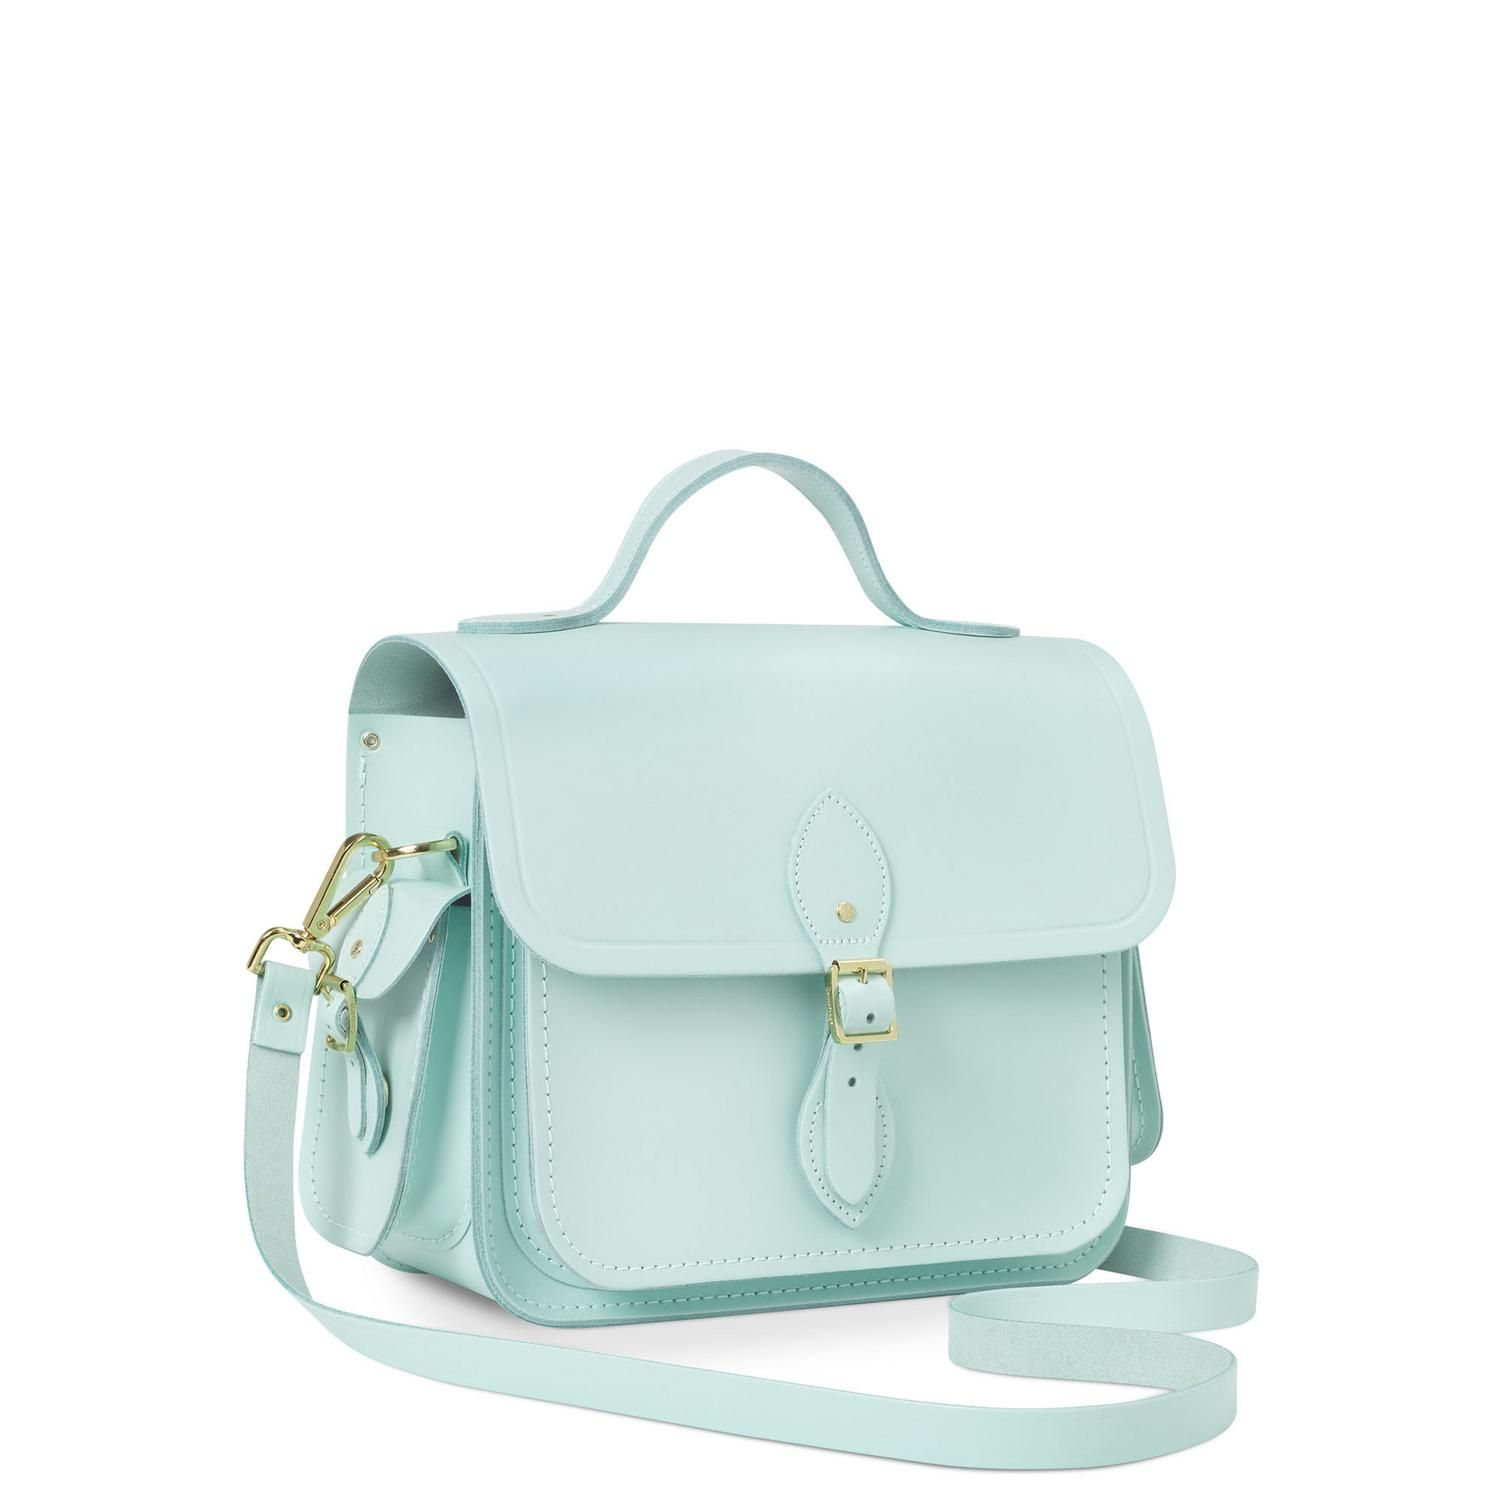 Sweet Pea Blue Large Traveller Bag With Side Pockets 225 Cambridge Satchel